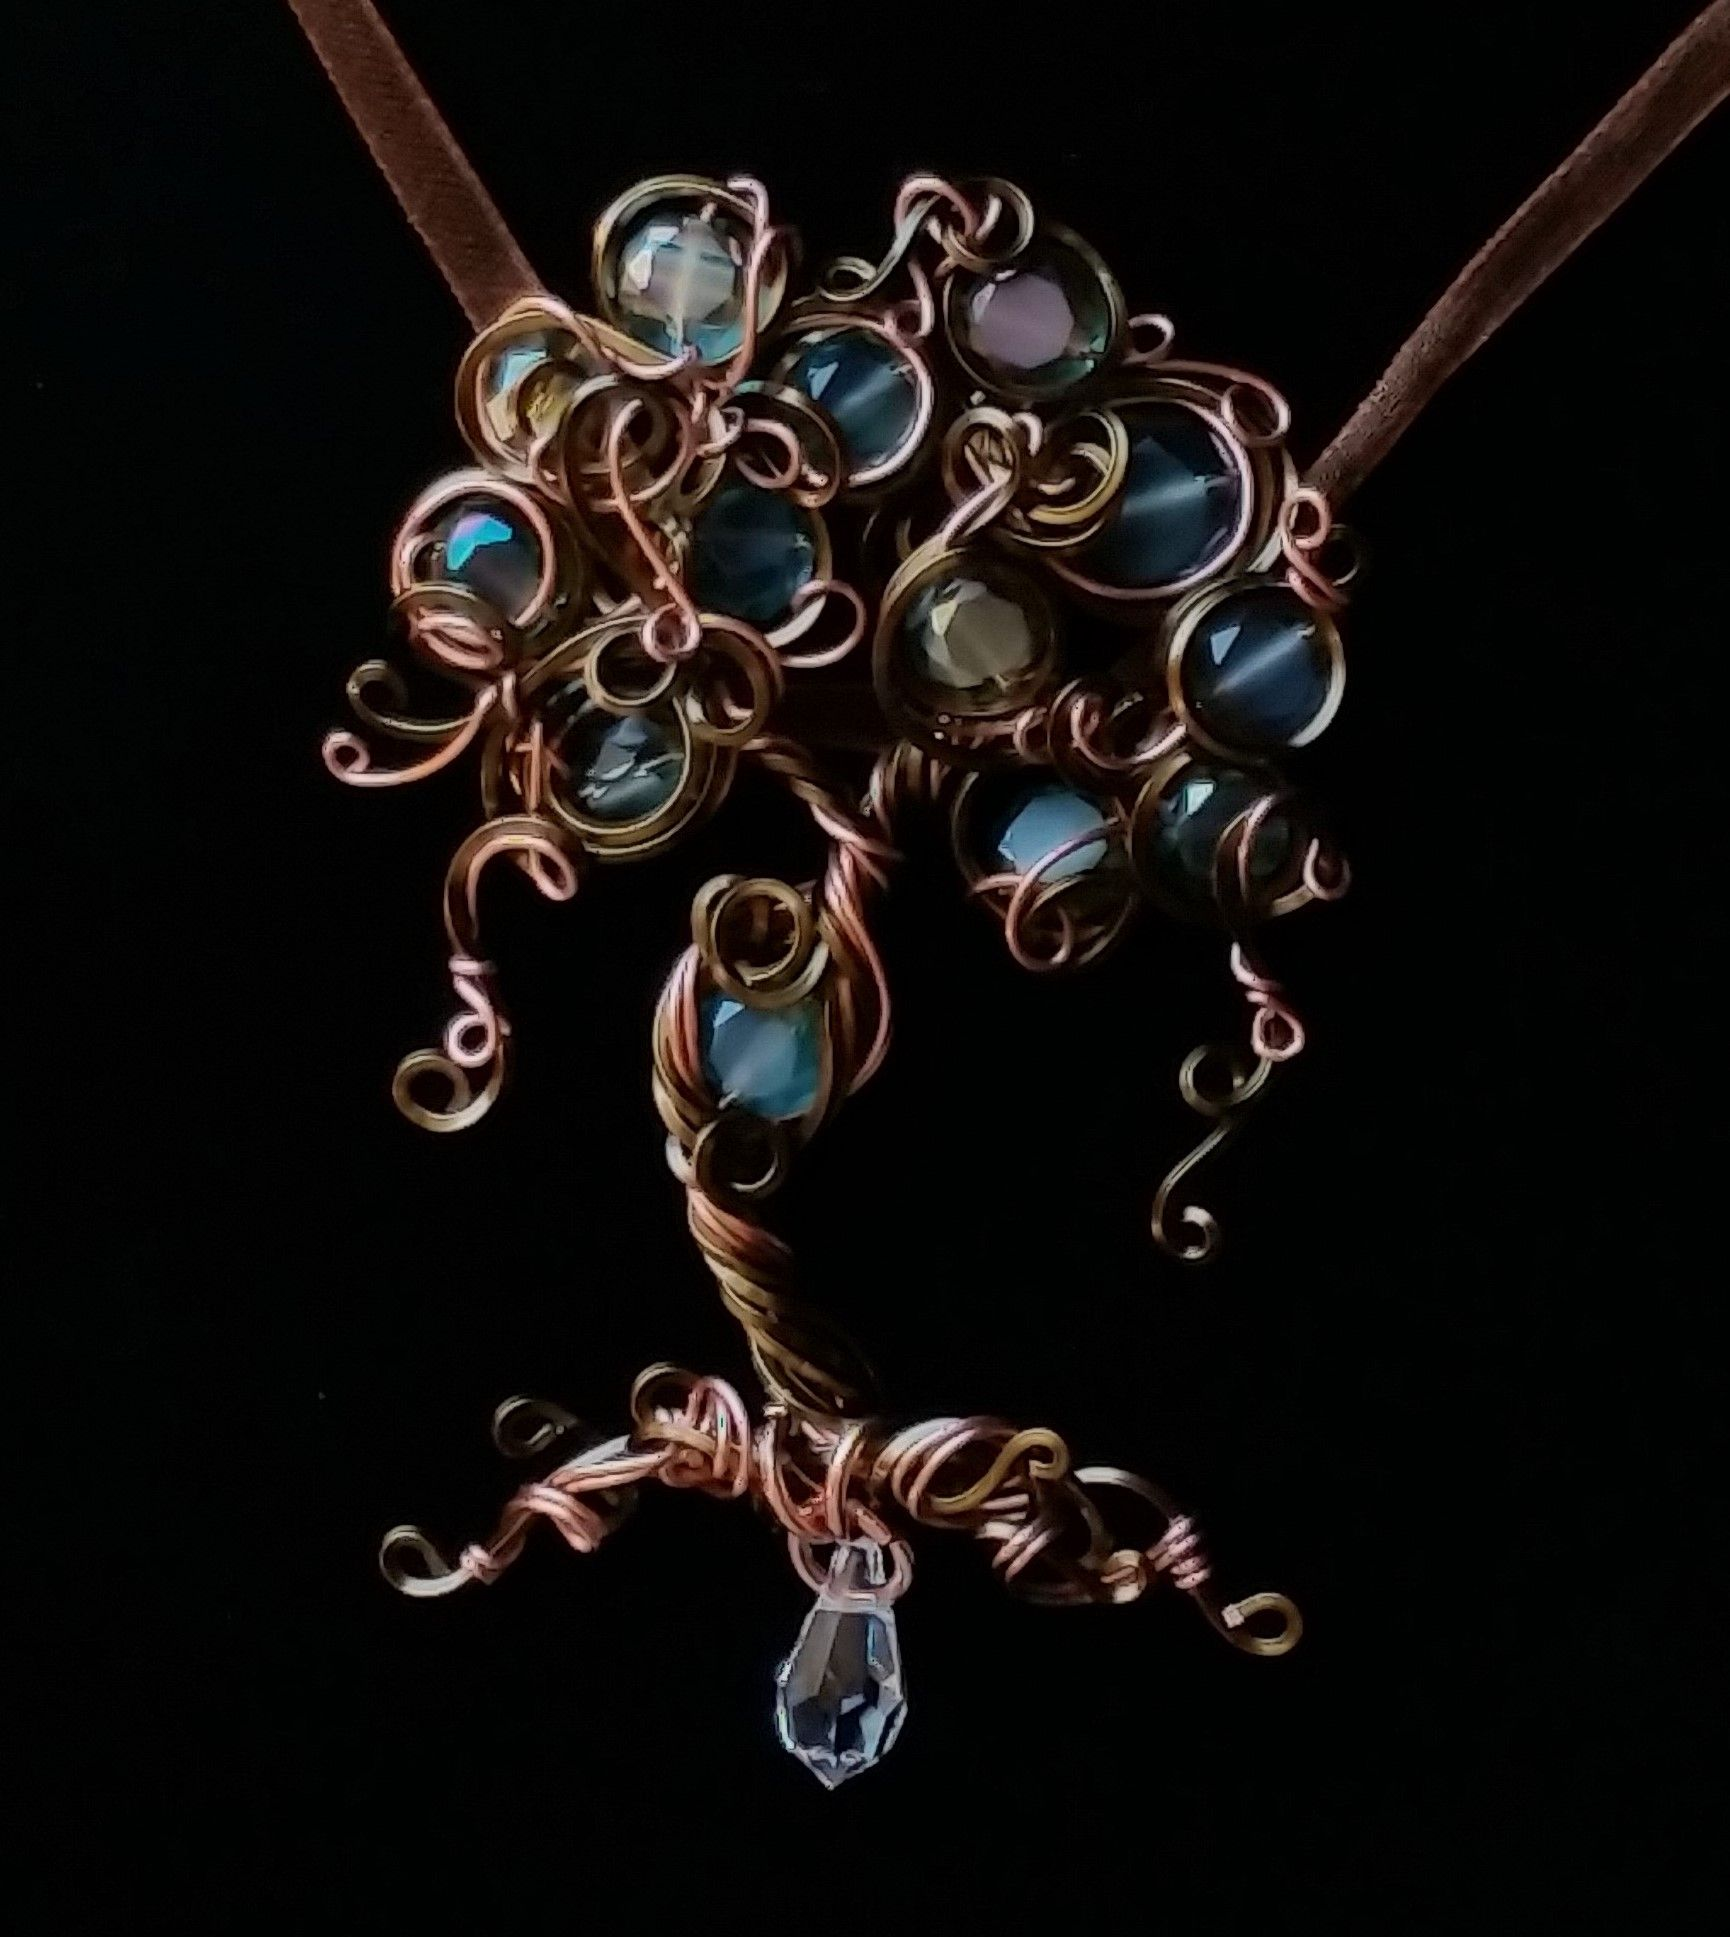 Free form wire wrapped tree of life pendant with beaded accents by Lepidus Plasmatio